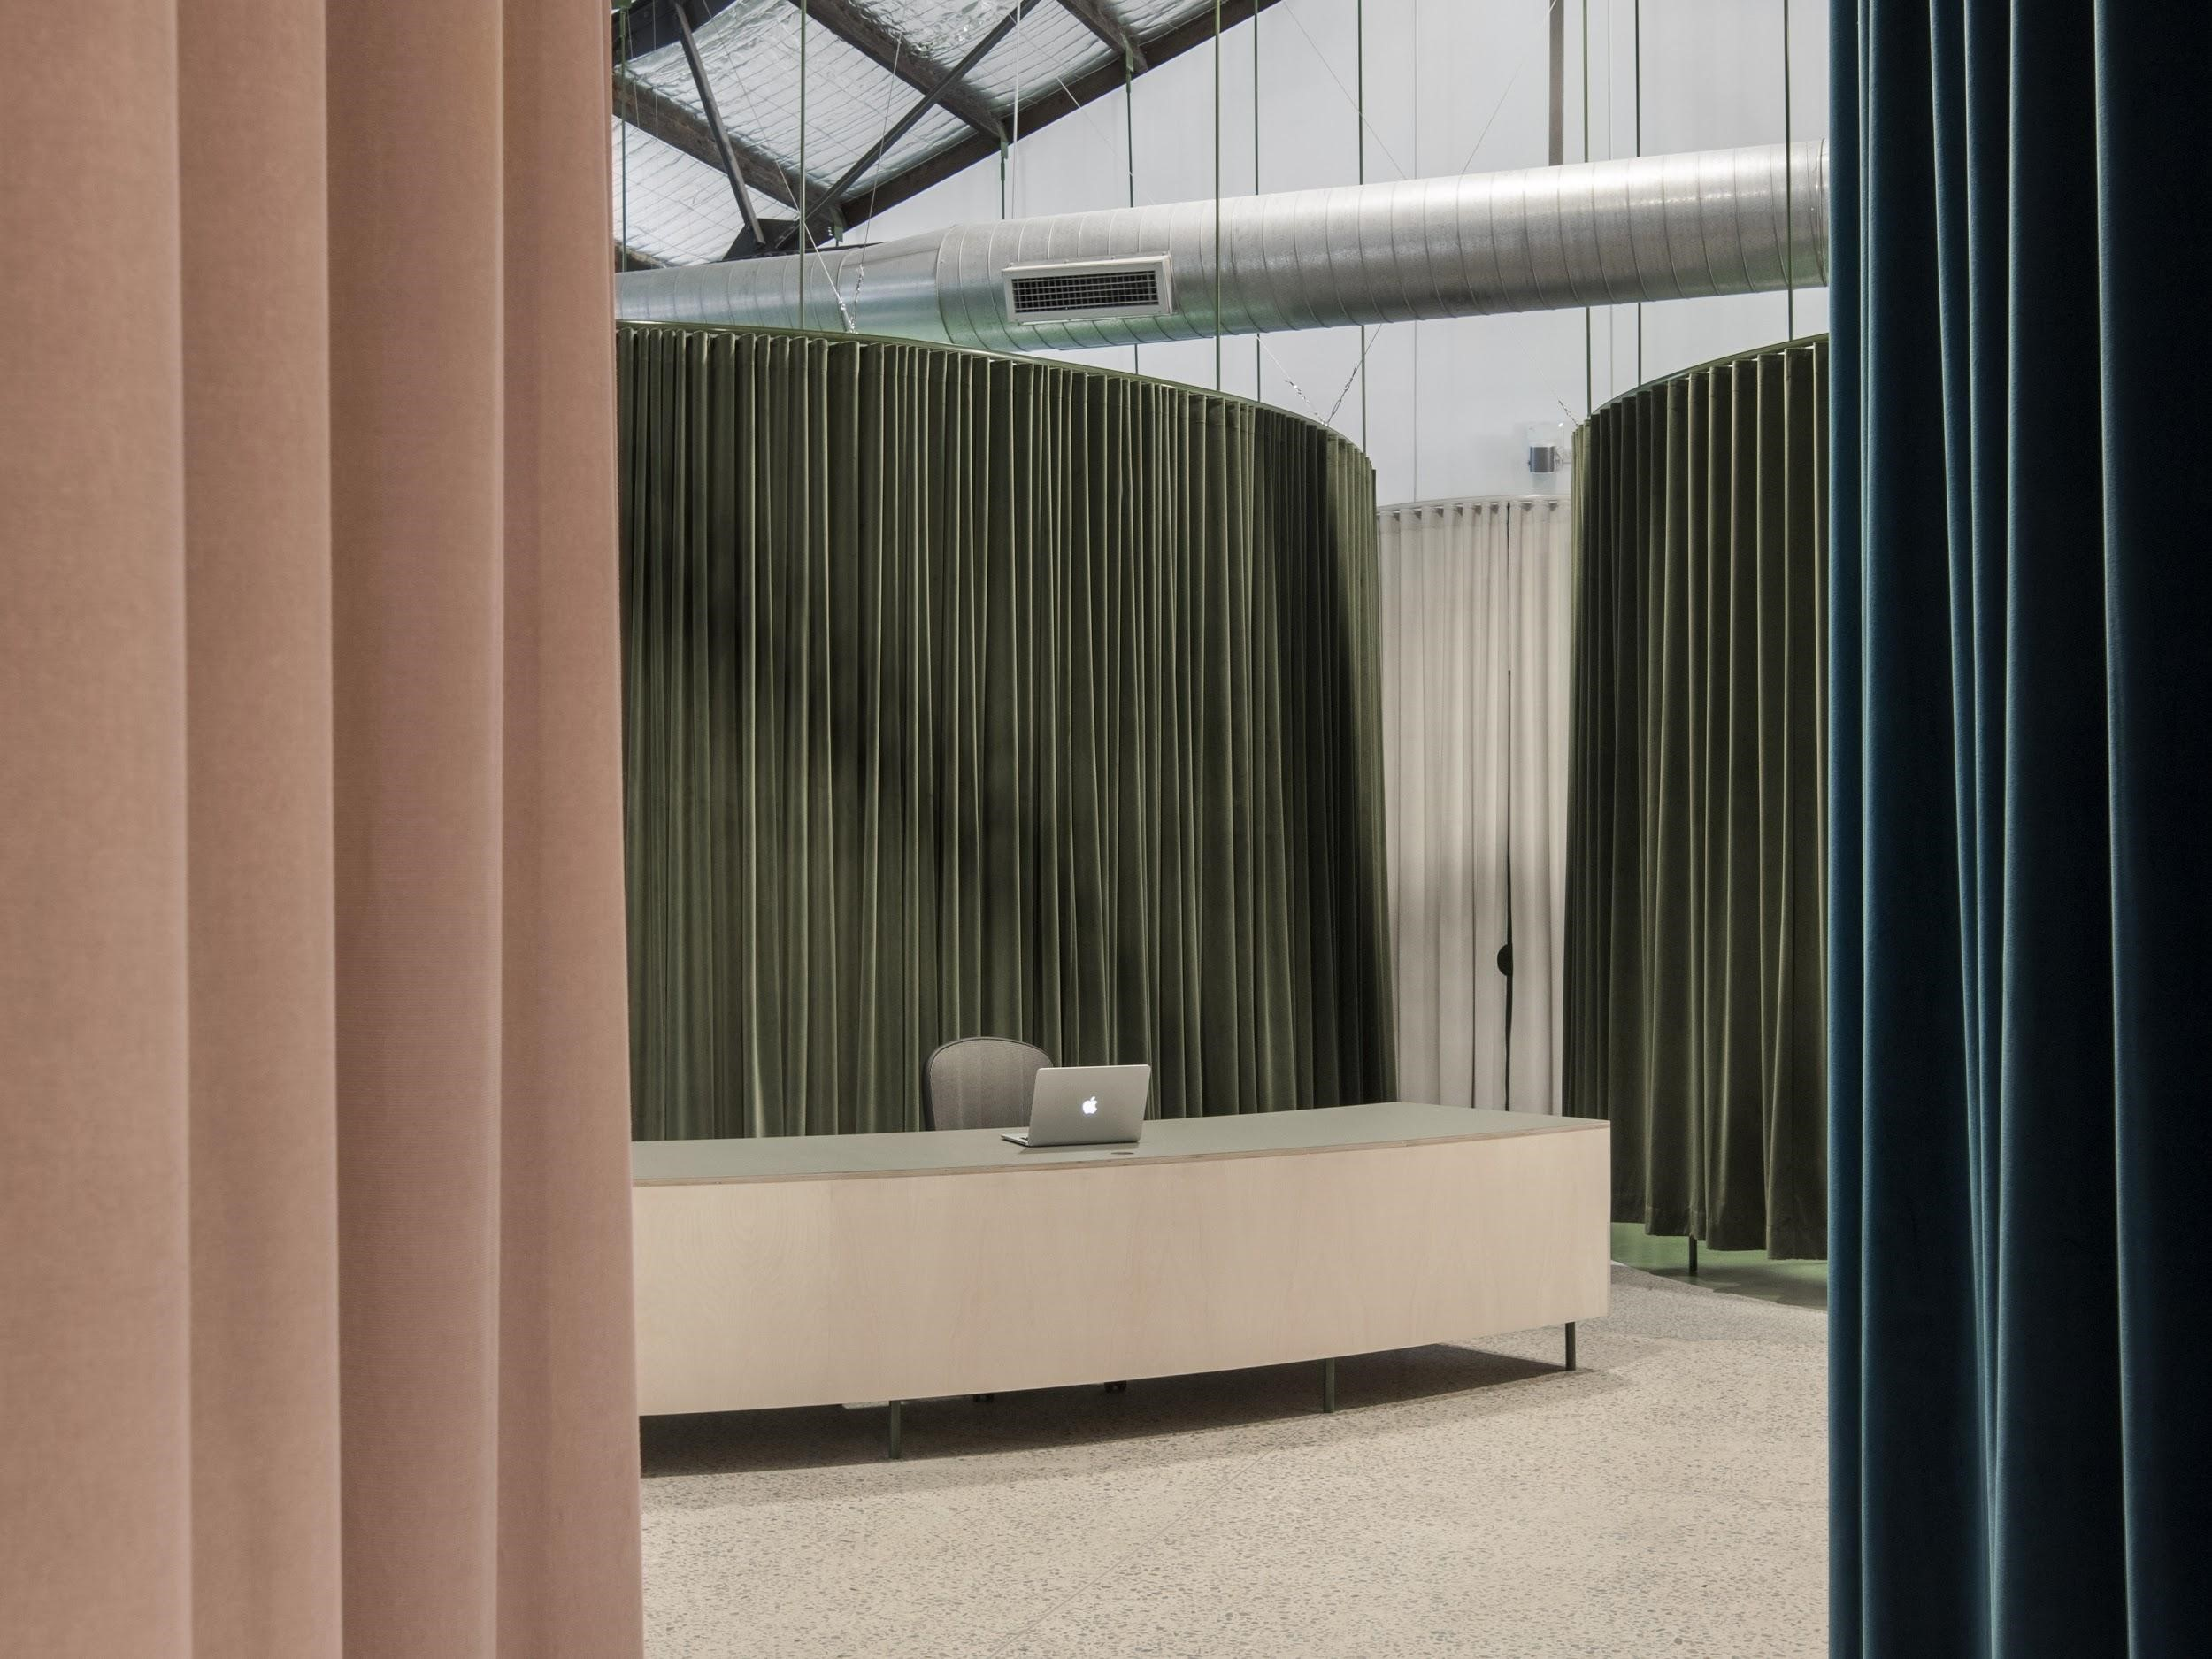 The Curtains Alternately Conceal And Reveal, Creating Zoned 'pods' Whose Purpose Is Denoted By The Colour.